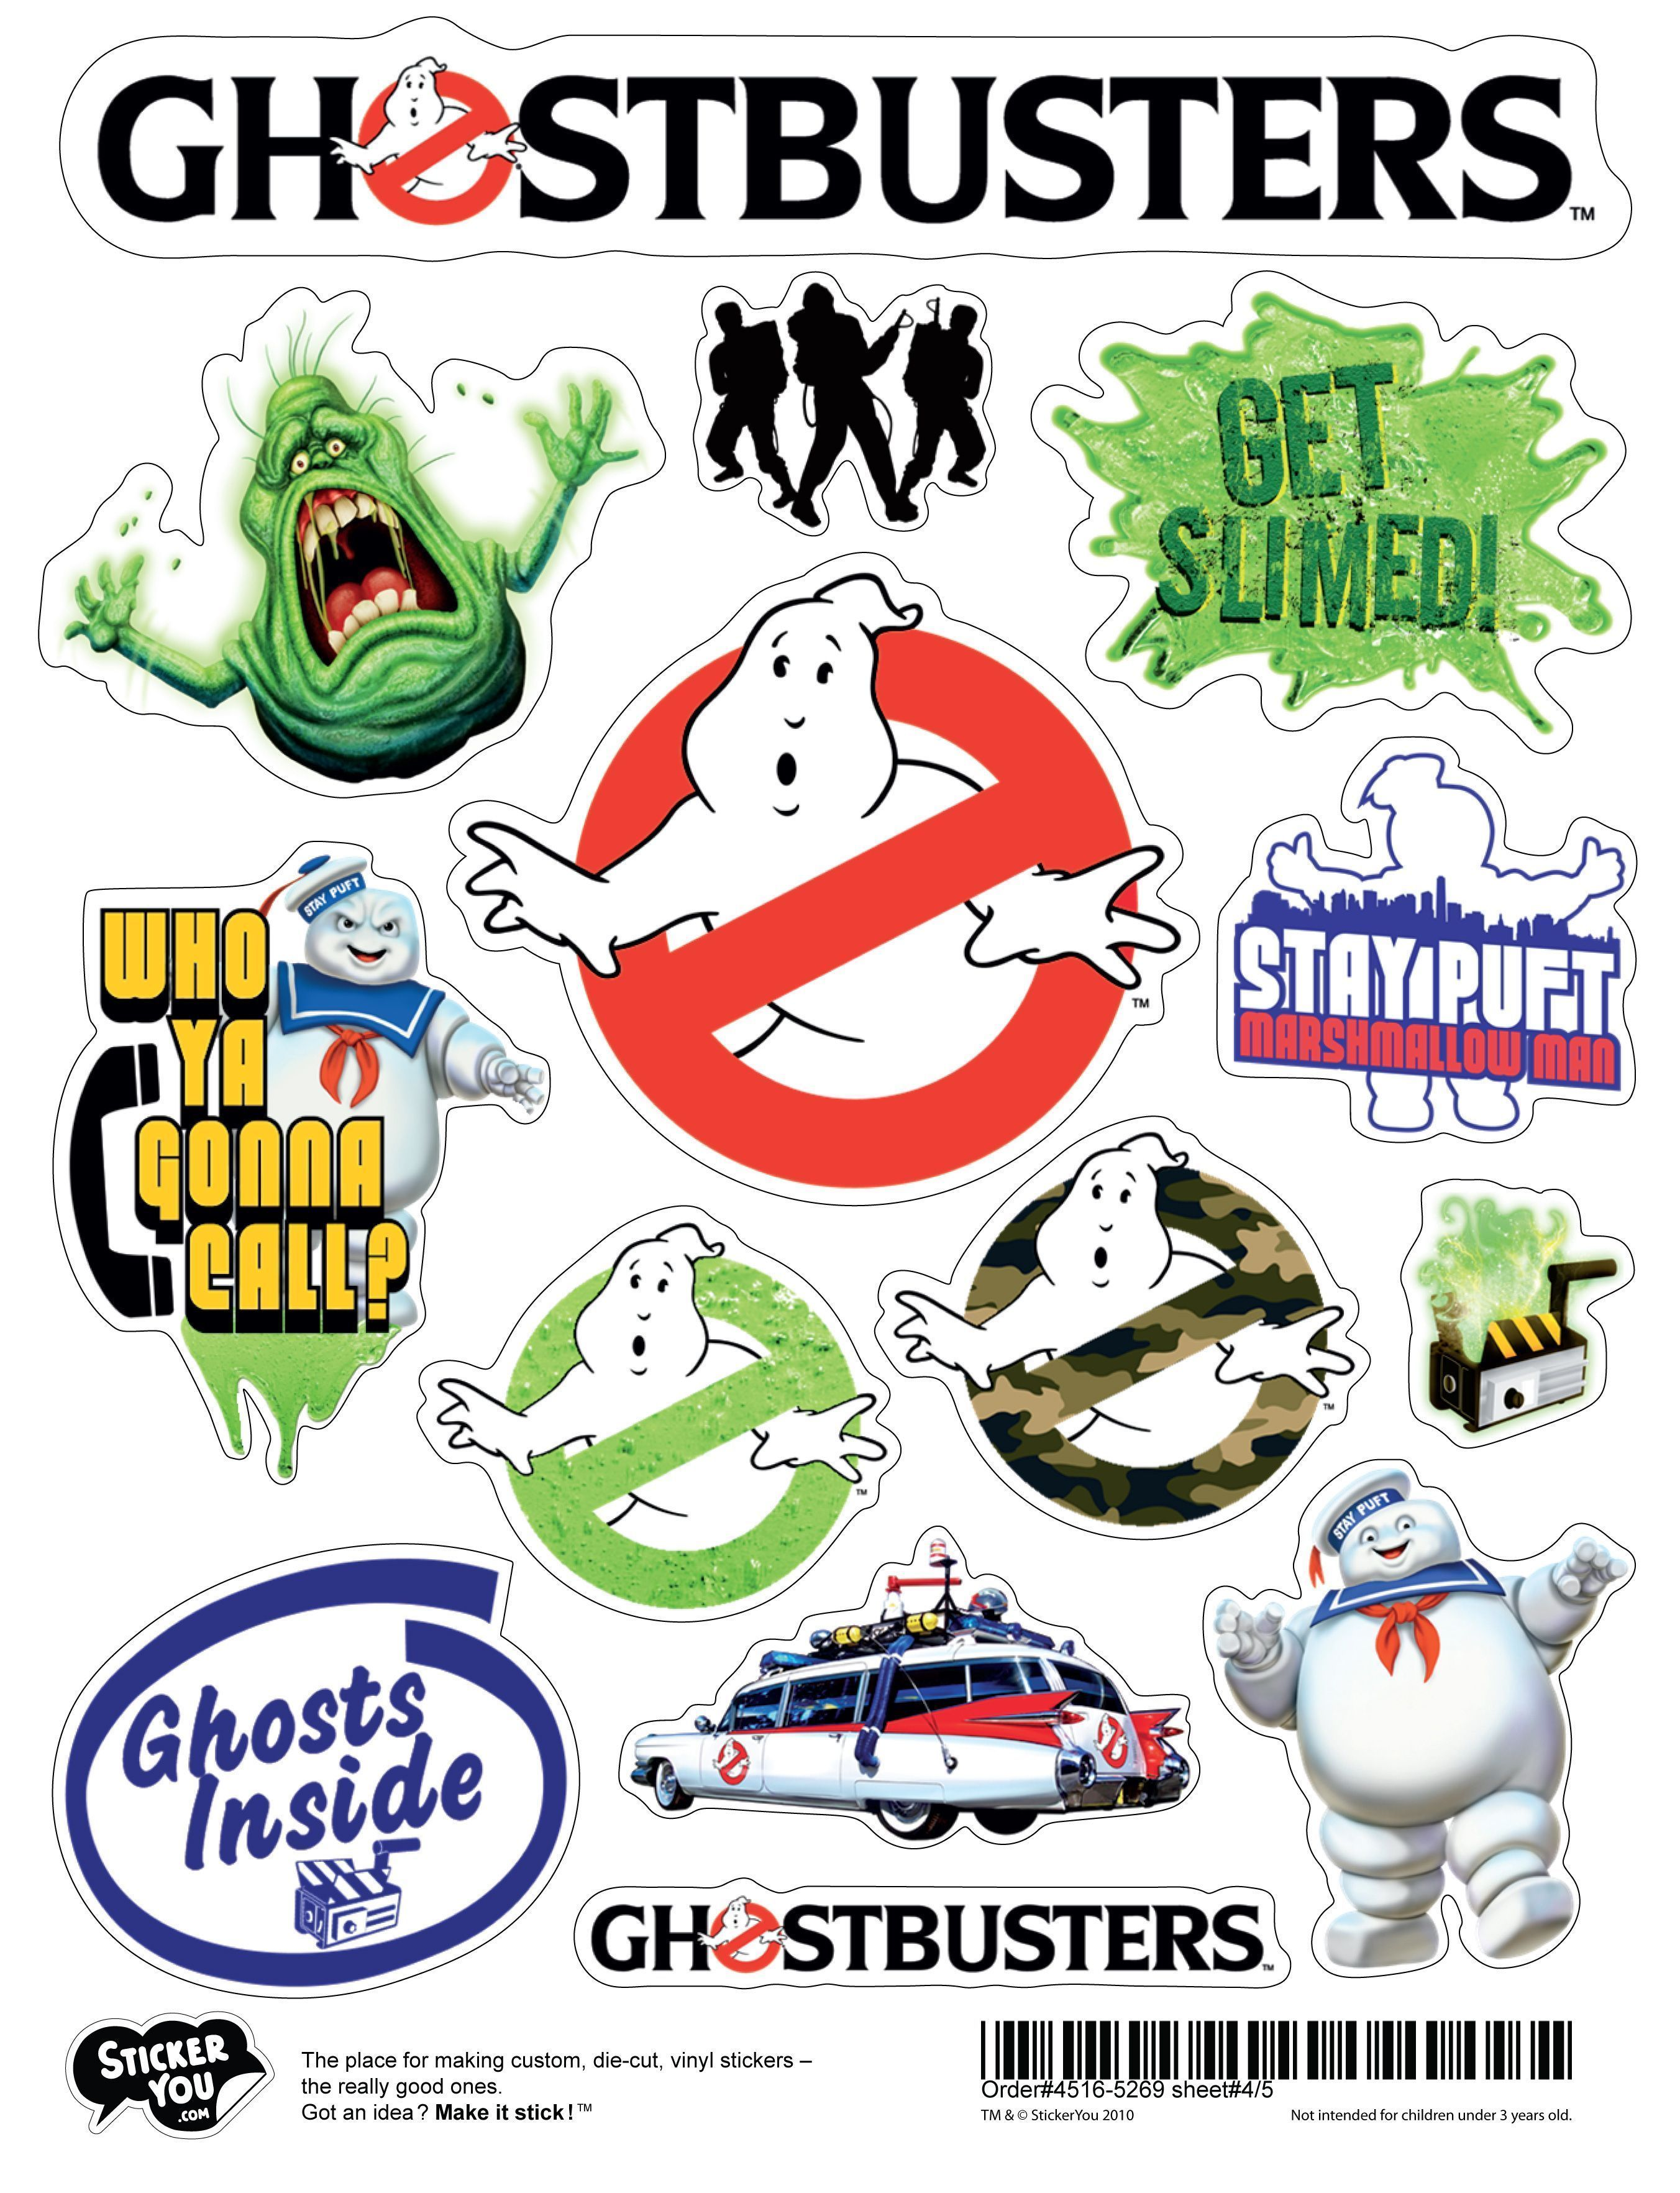 Ghostbusters Birthday Invitations Templates Graceful Appearance For Egreetingecards Com Deguisement Ghostbusters Geburtstagsparty 7 Geburtstag Kinderparty